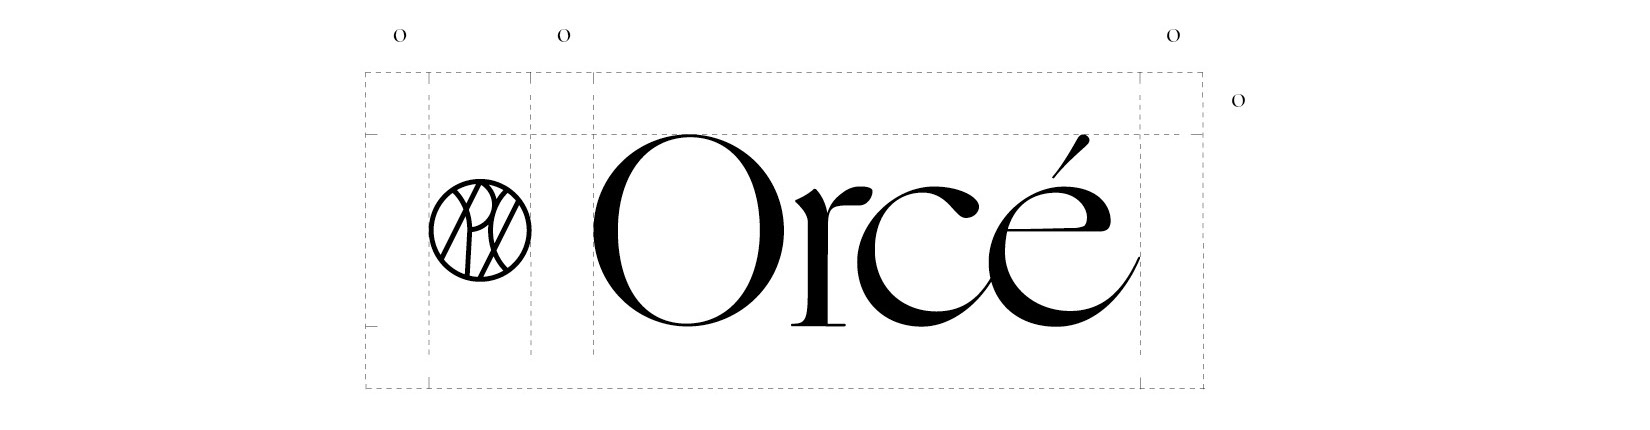 Logo and Brand name created by DTE studio for Orcé's debut product.